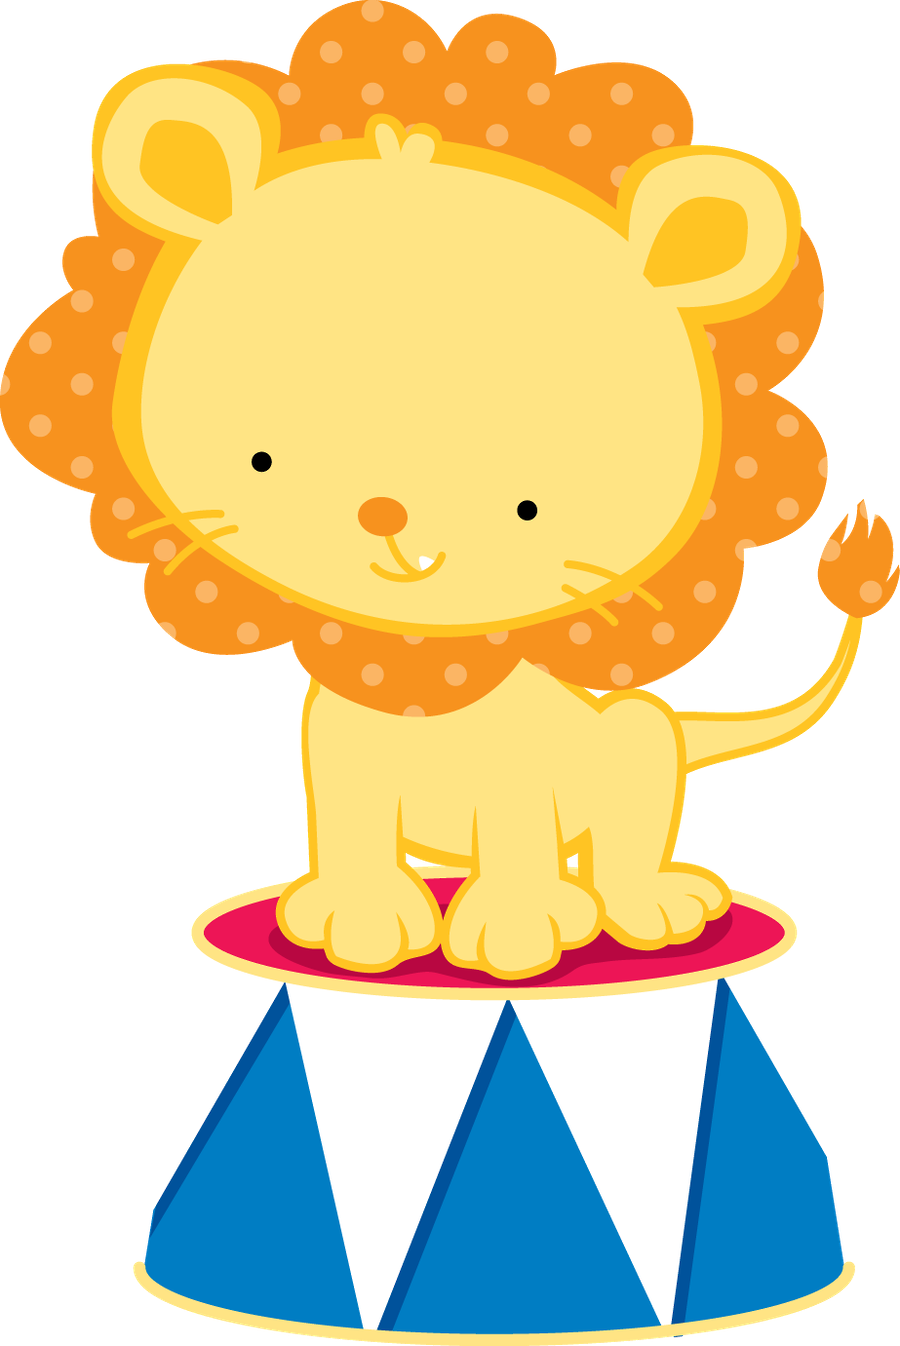 png royalty free download Clown clipart circus lion. Minus say hello cumplea.